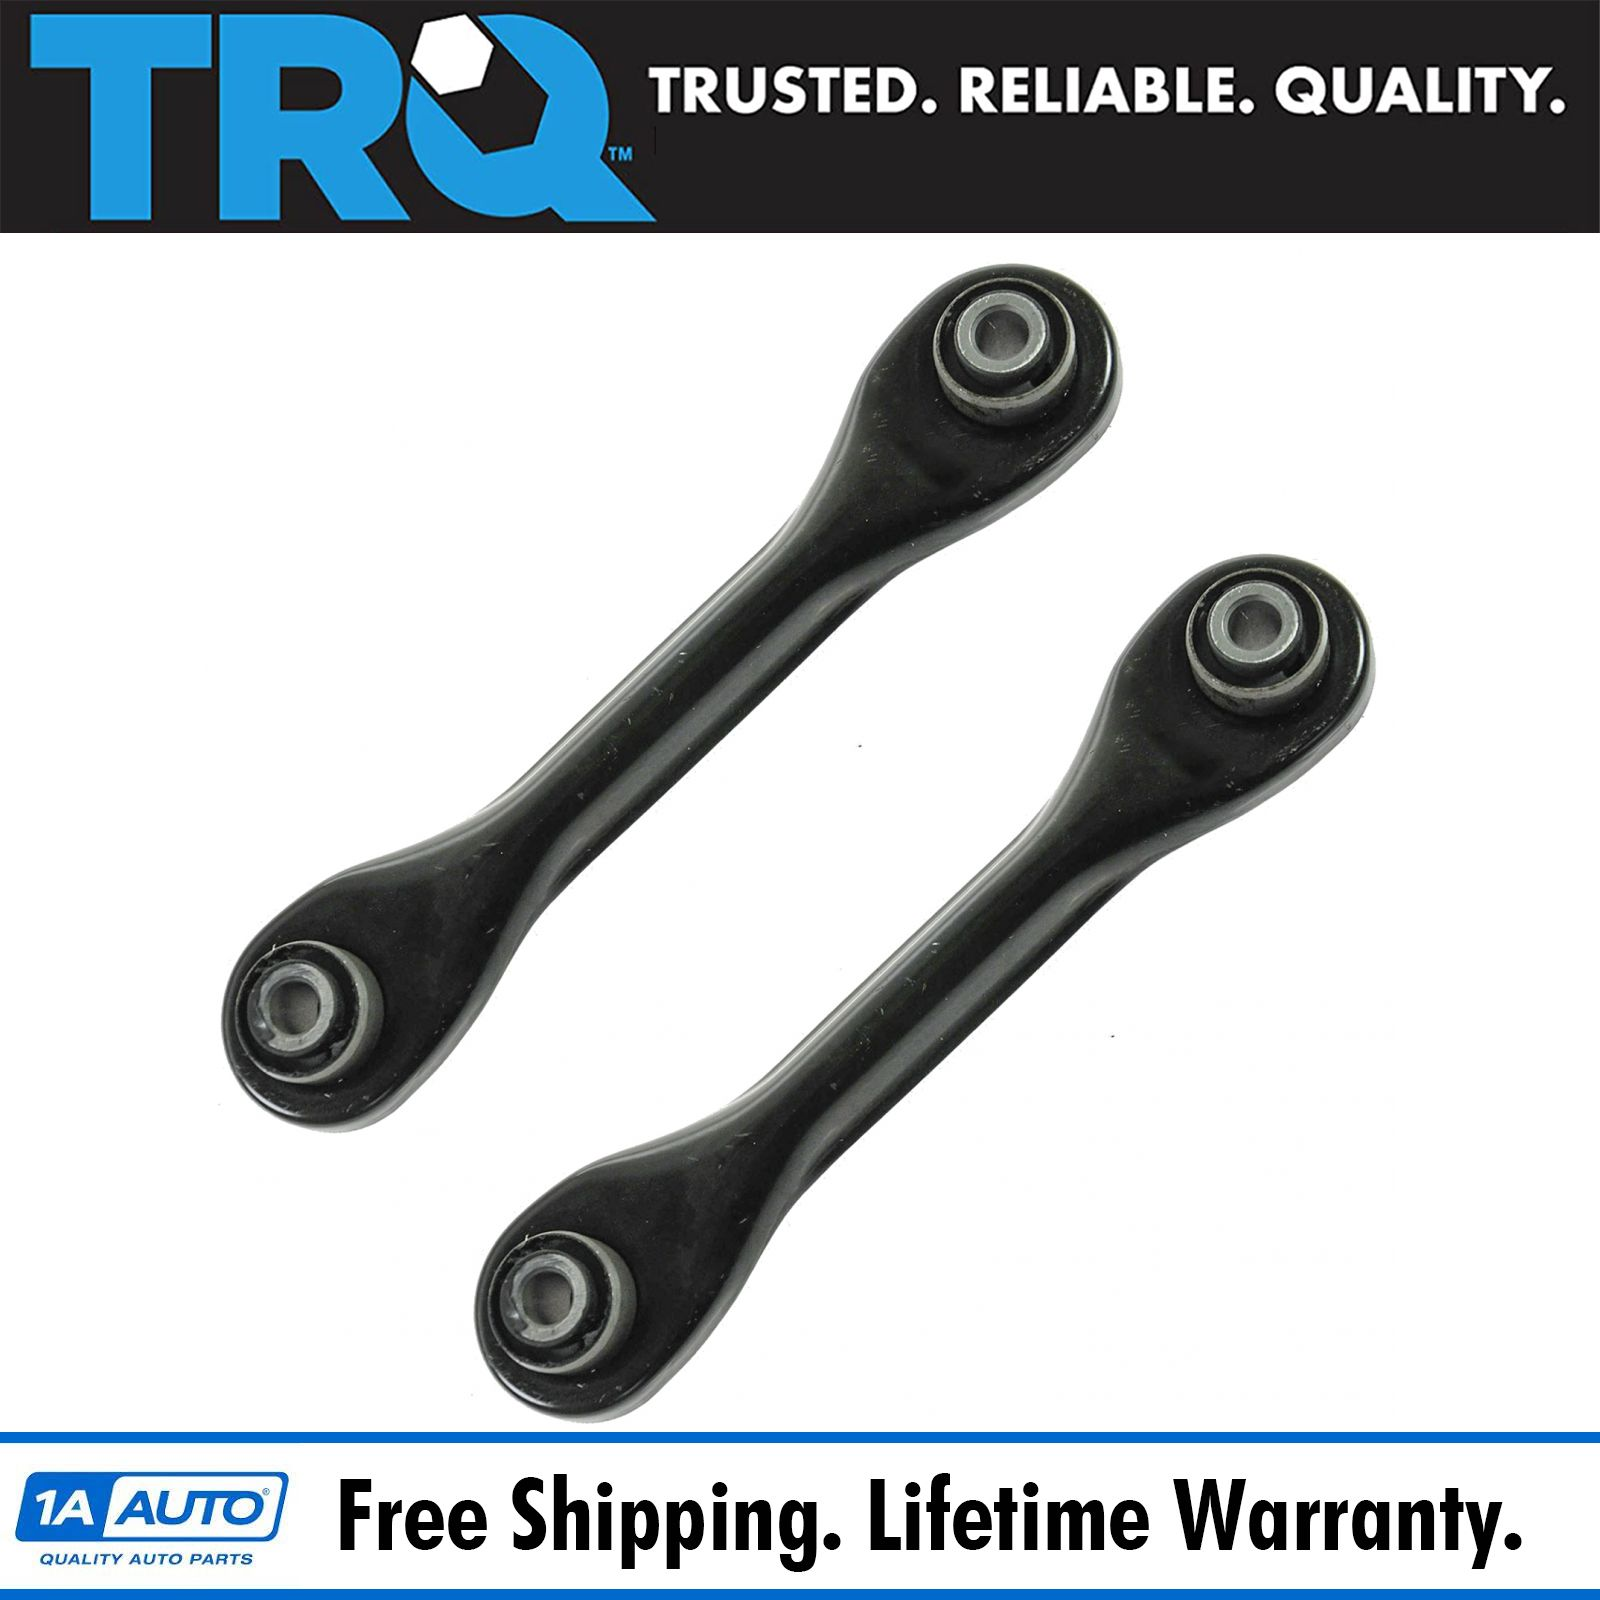 Rear Upper Adjustable Arms /& Trailing Arms fits for Ford Focus 2003-2011